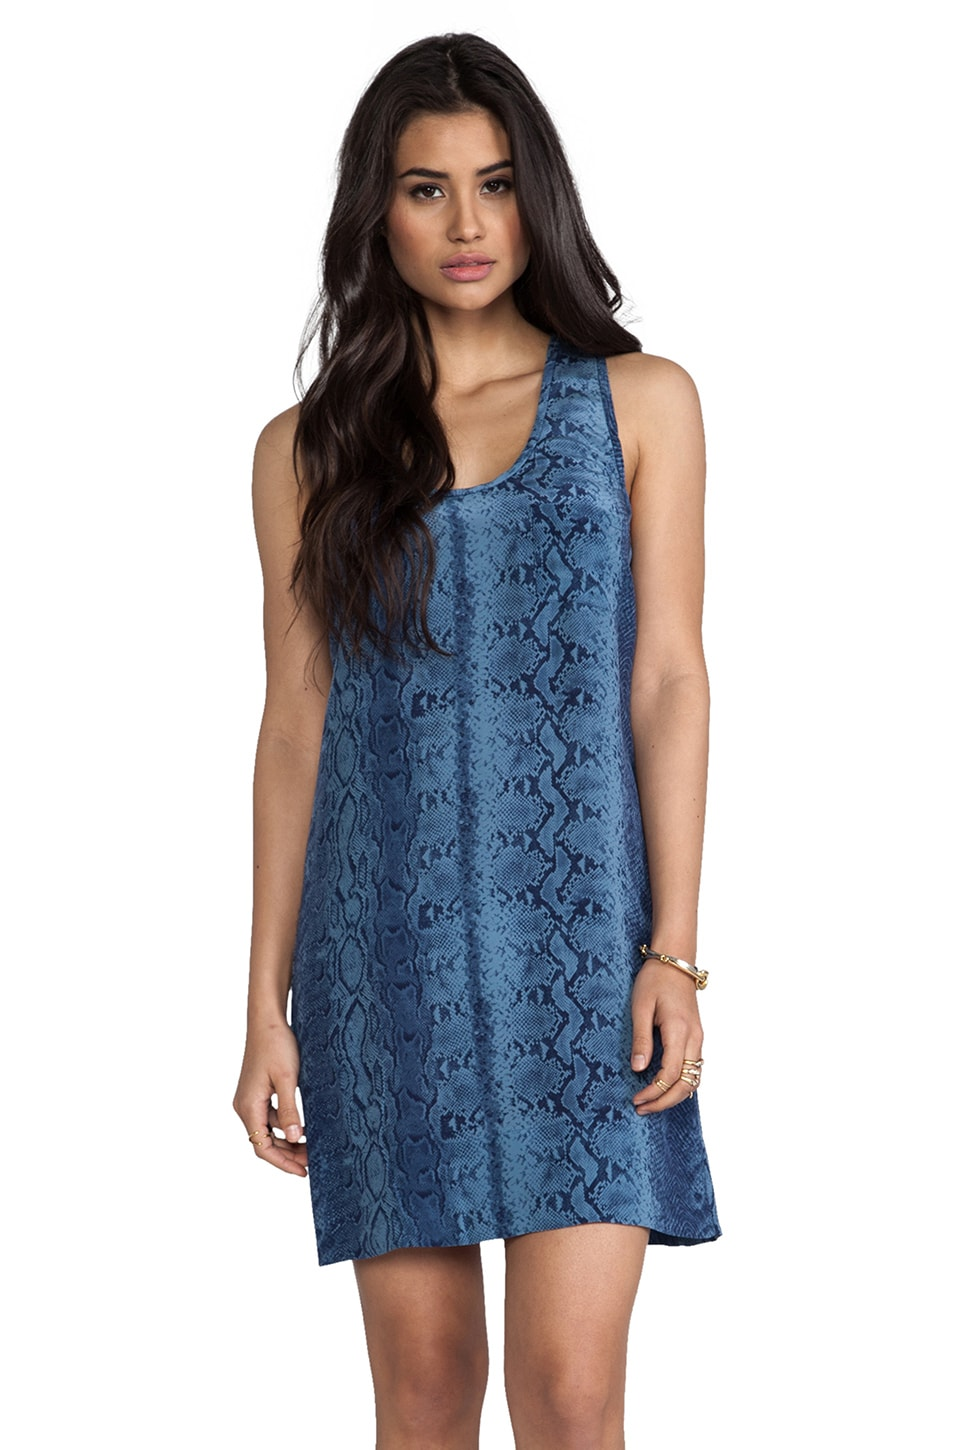 Joie Peri B Snake Printed Dress in Dark Navy